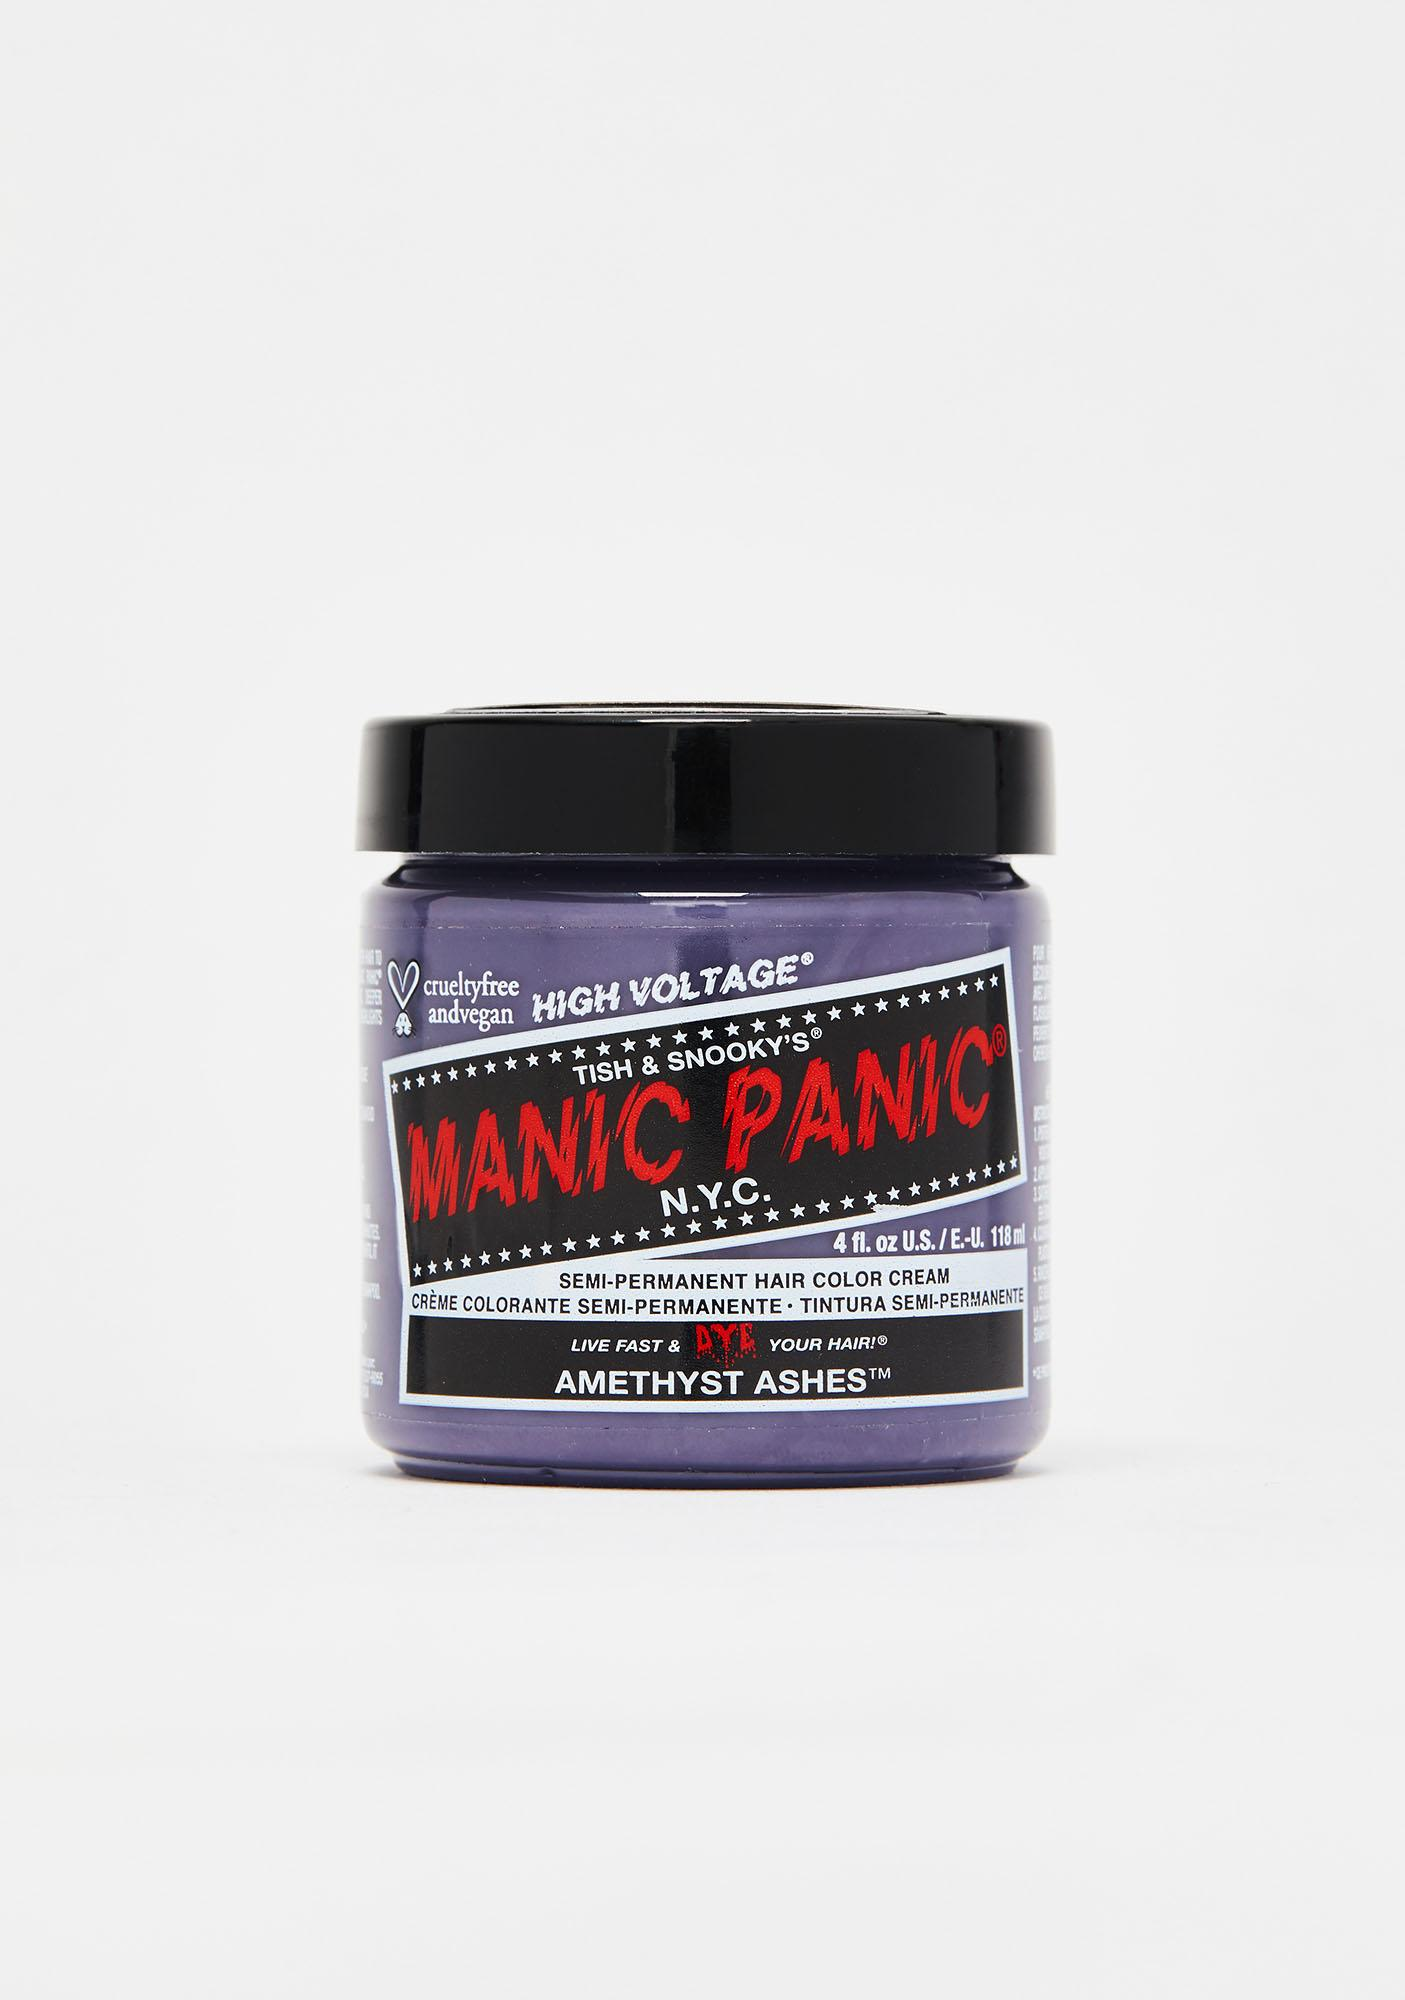 Manic Panic Amethyst Ashes Classic High Voltage Hair Dye